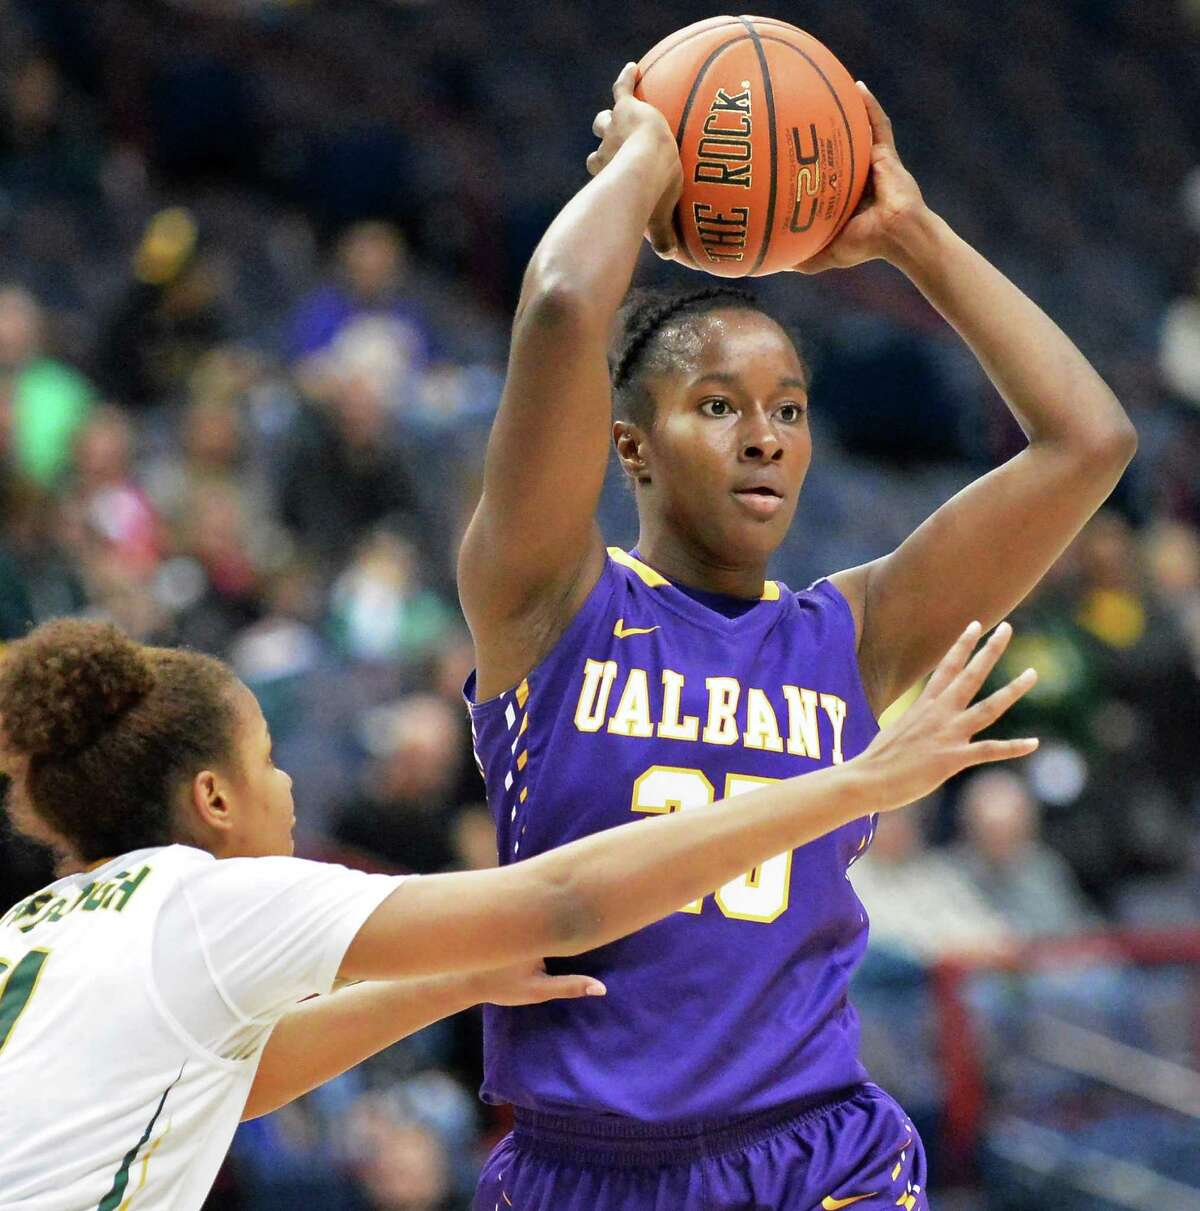 Siena's #21 Kollyns Scarbrough, left, covers UAlbany's #25 Shereesha Richards during Saturday's game at the Times Union Center Dec. 12, 2015 in Albany, NY. (John Carl D'Annibale / Times Union)